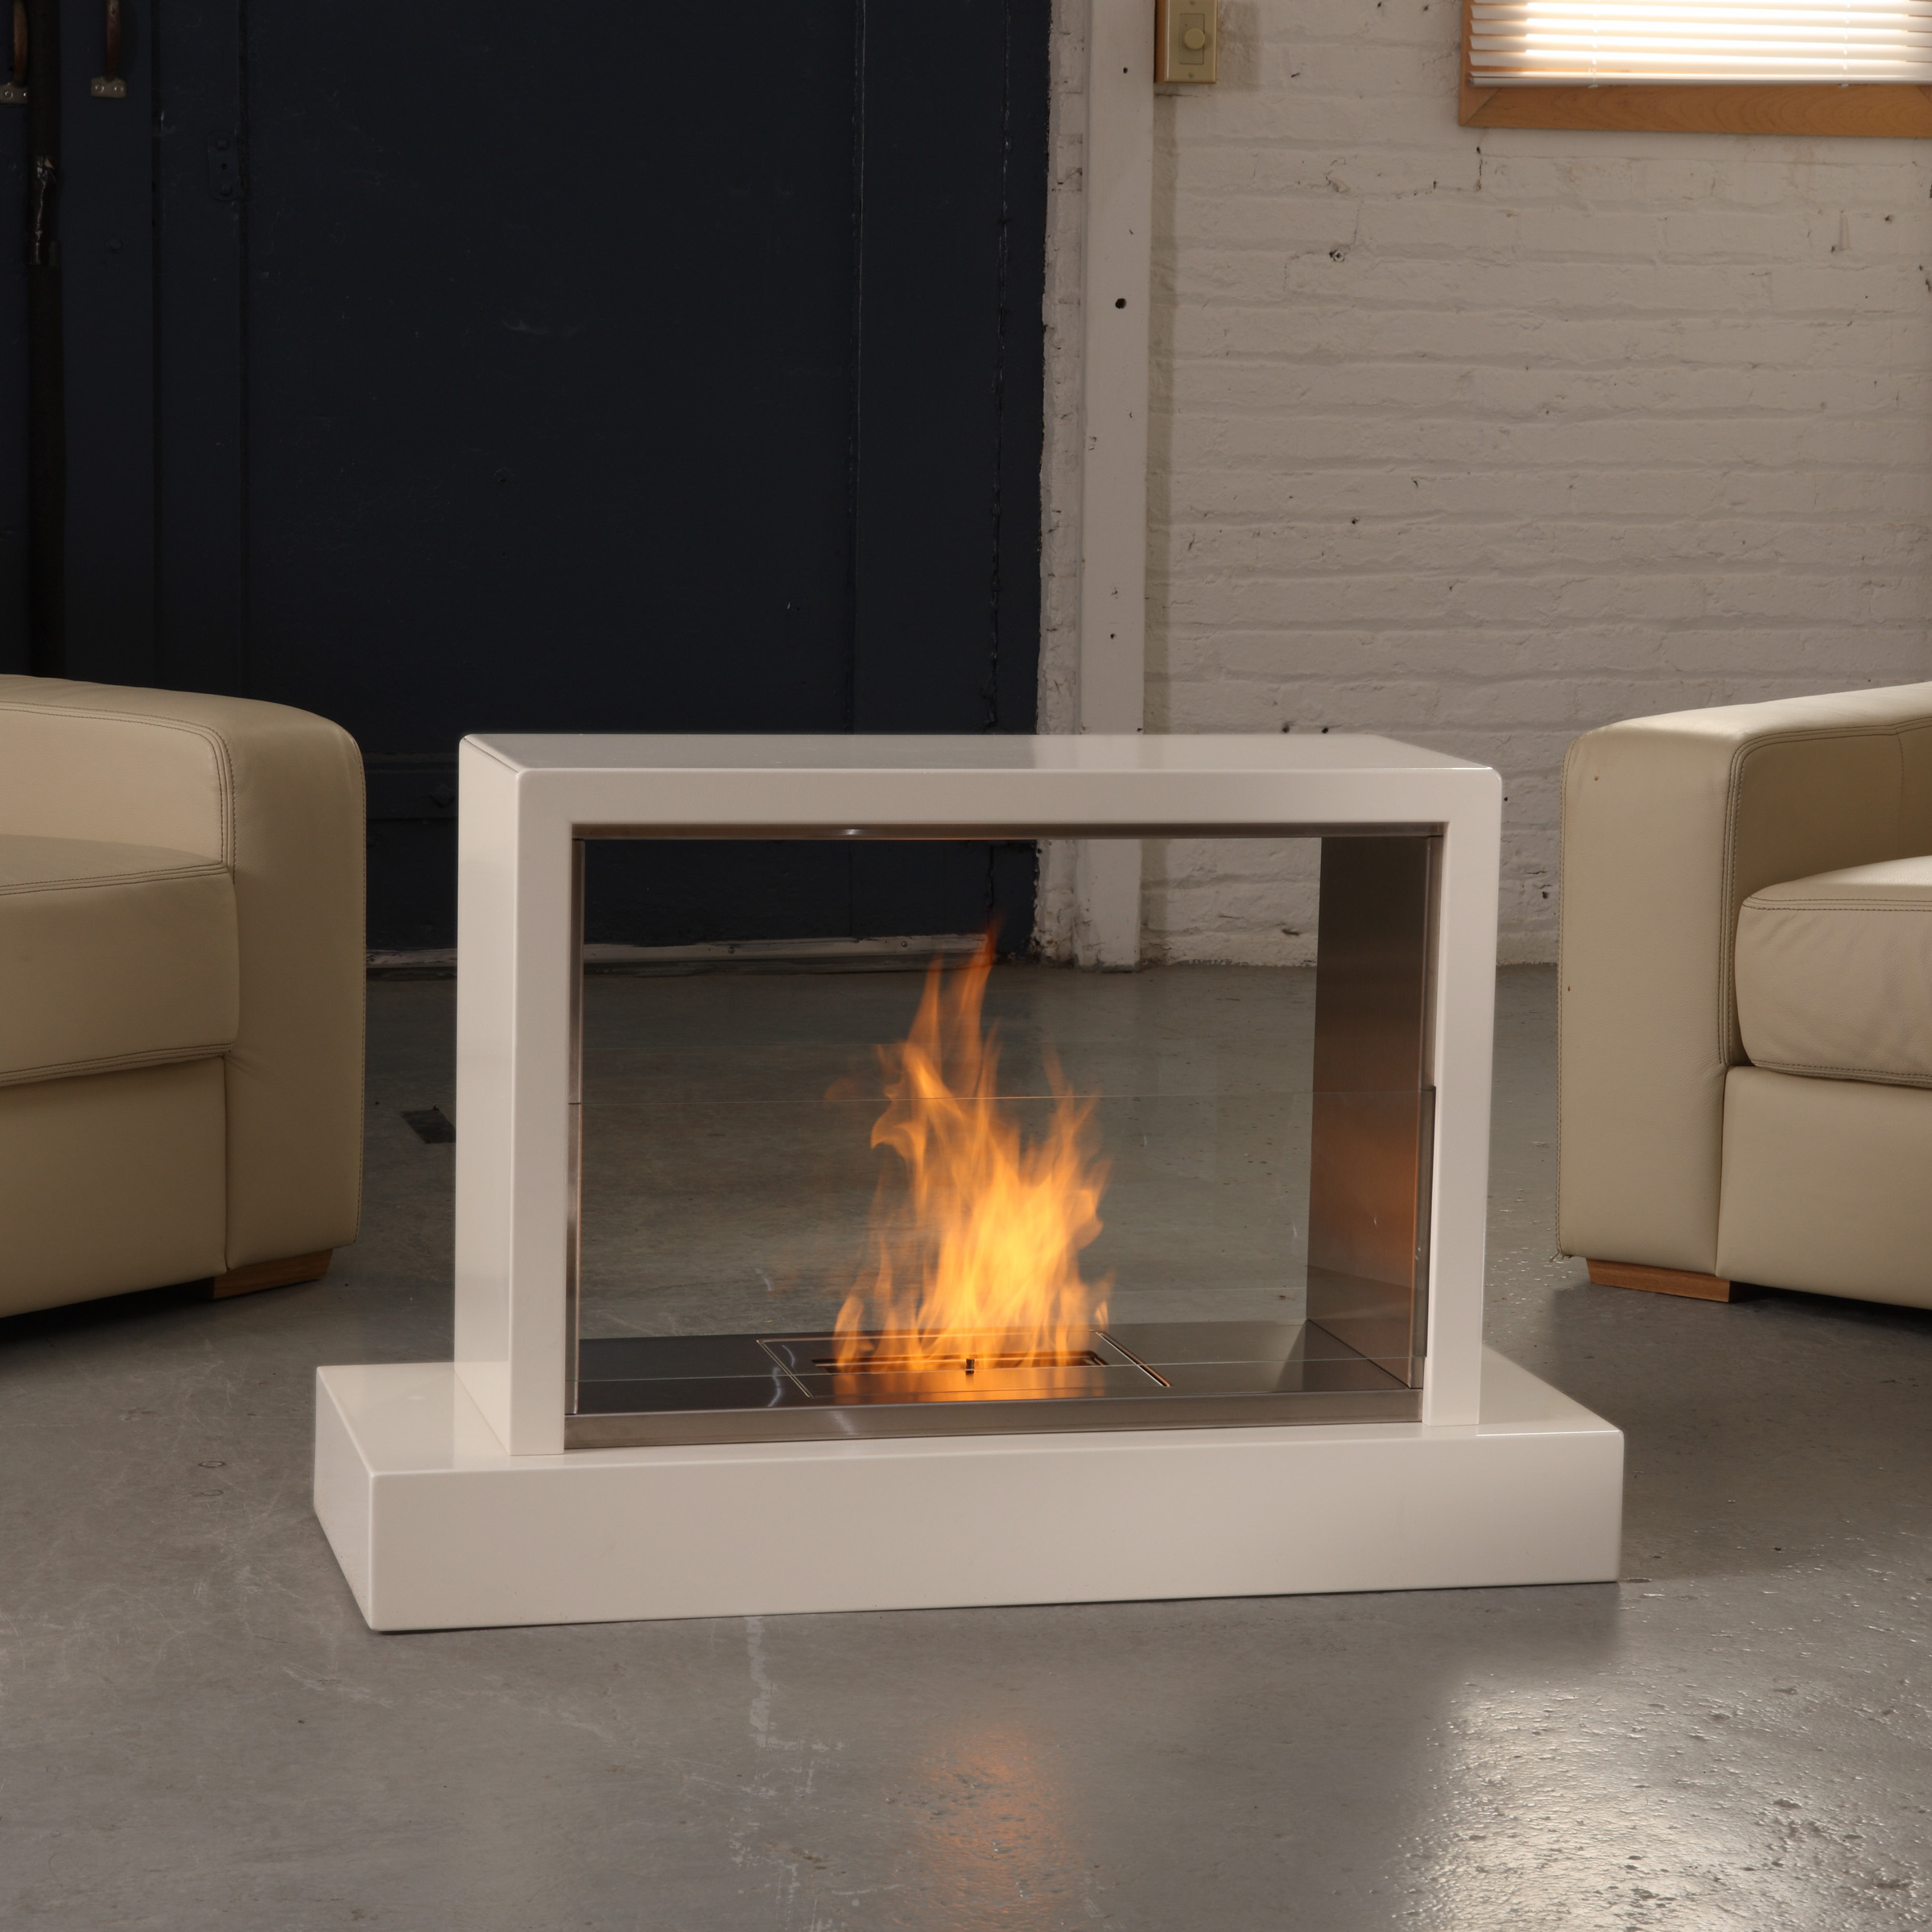 Portable electric fireplace indoor fireplace design ideas for Contemporary ventless gas fireplaces